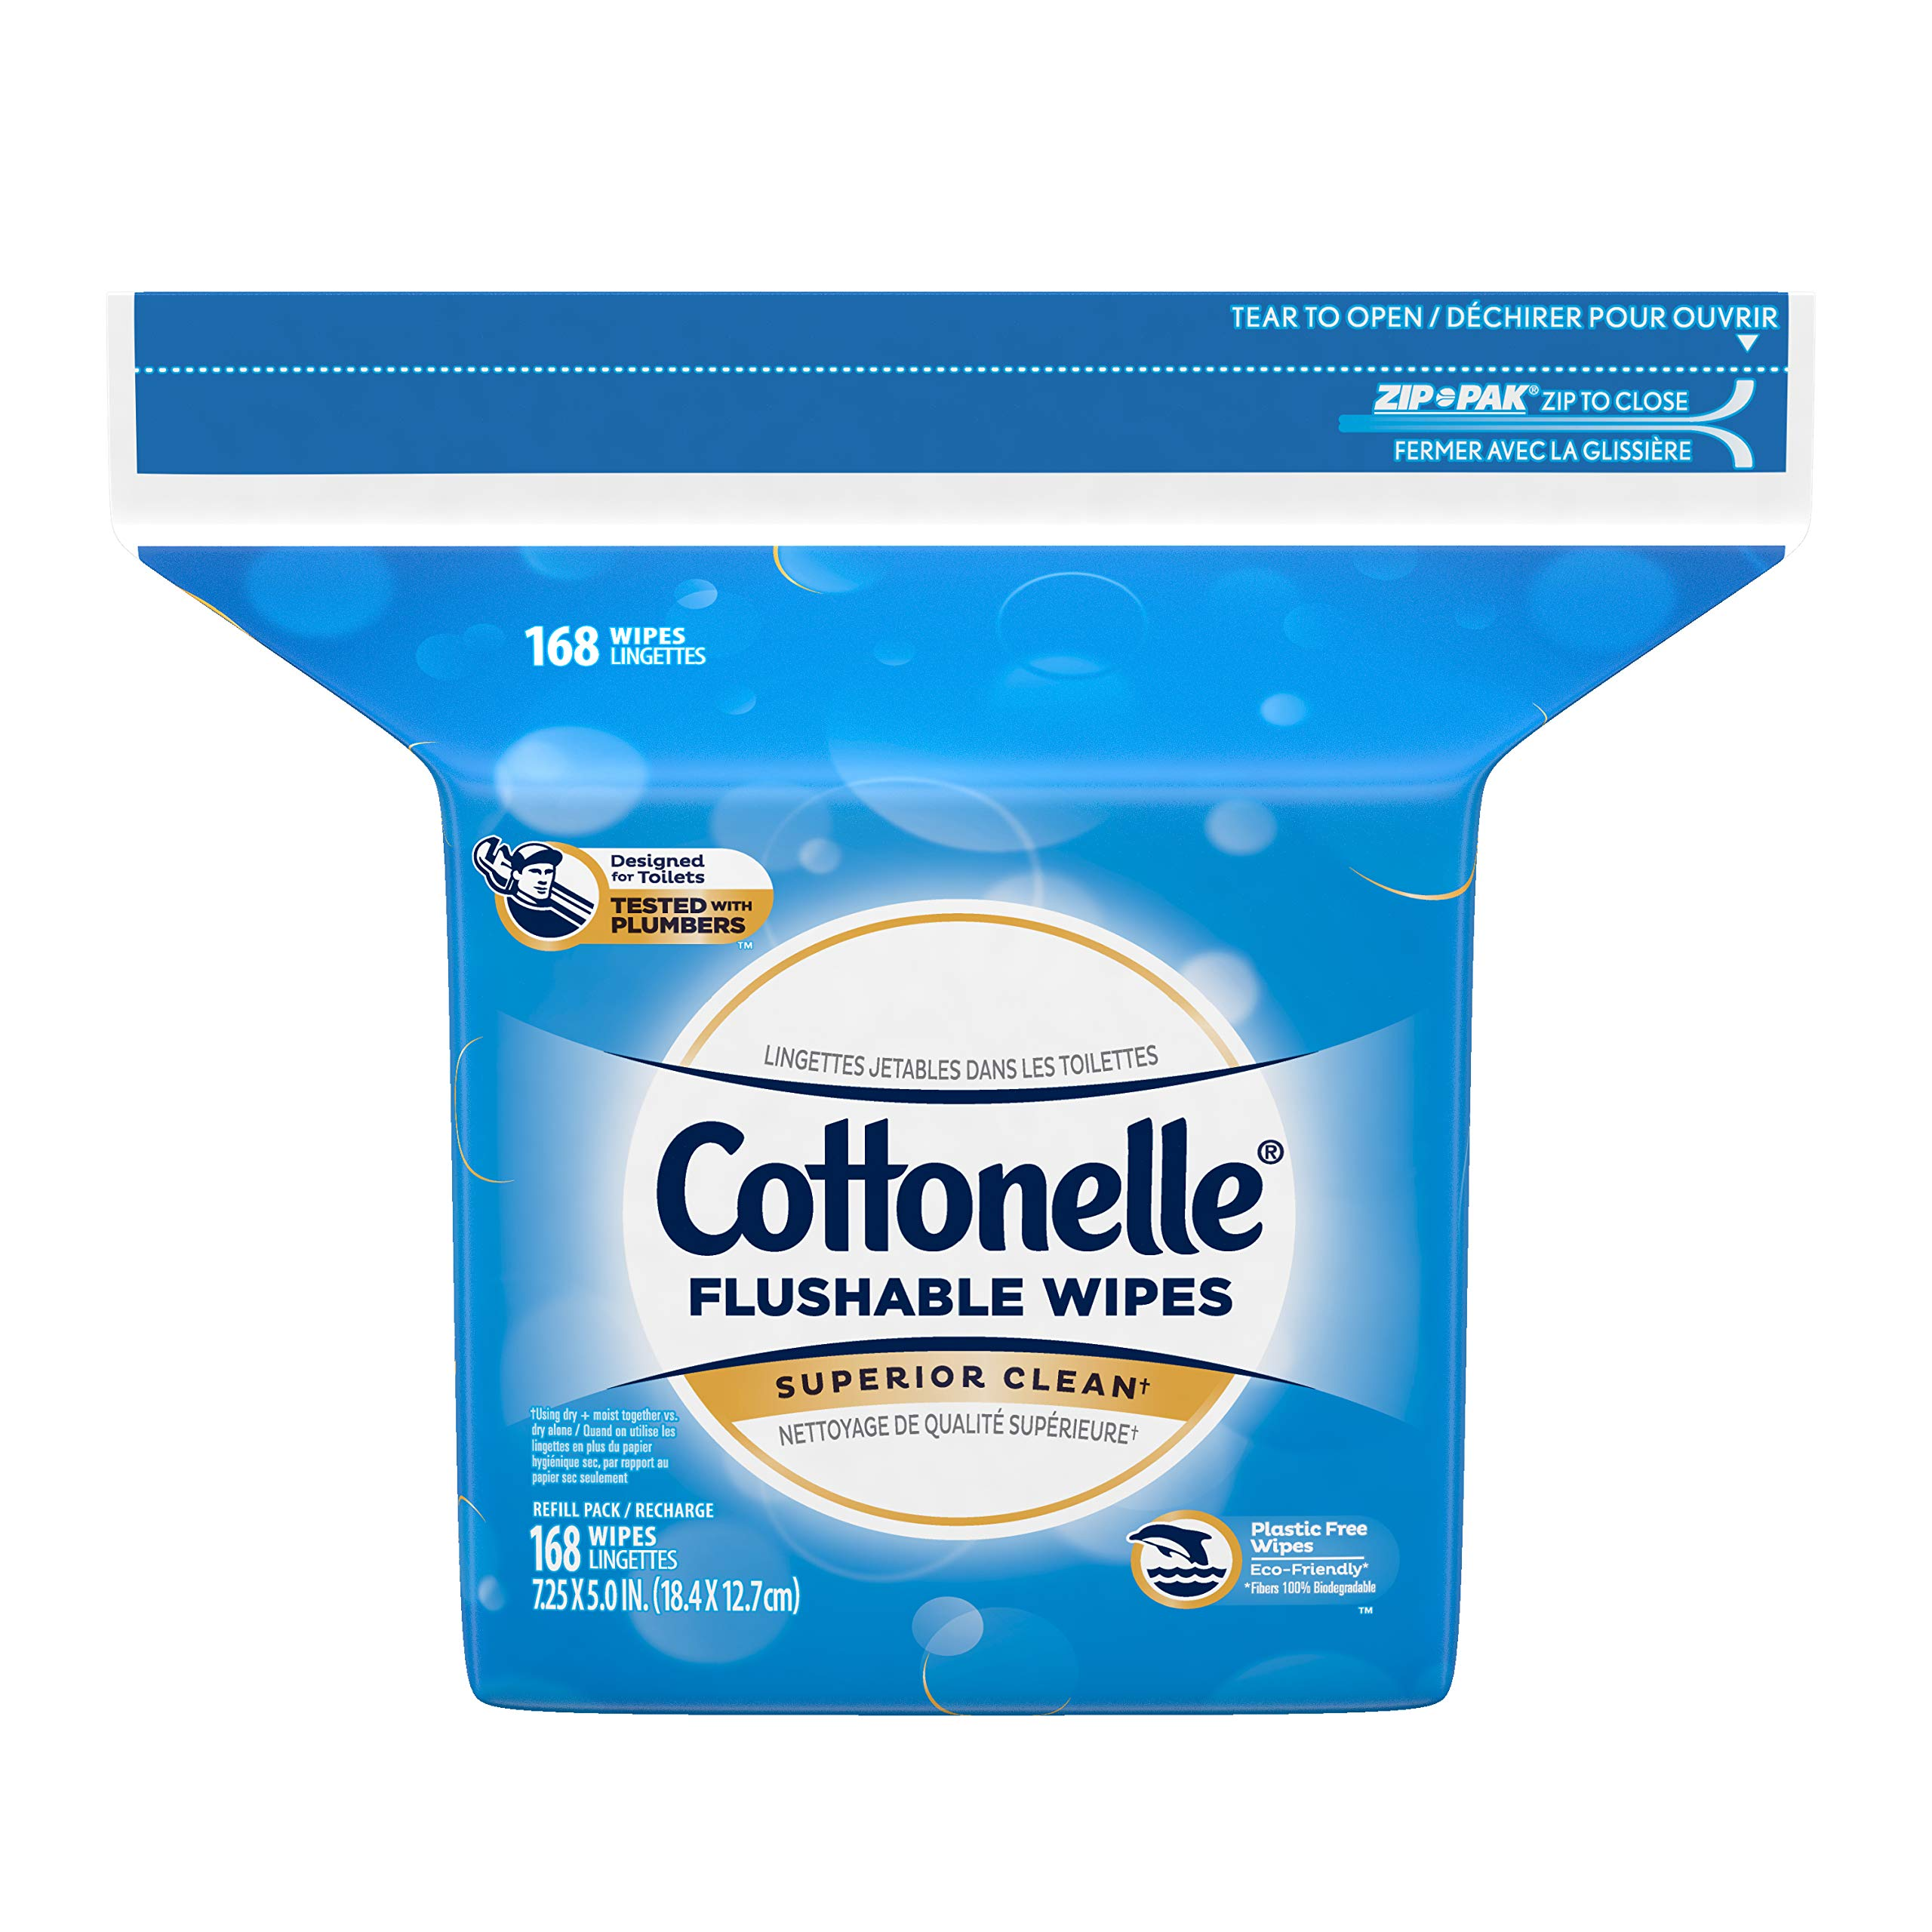 Cottonelle Flushable Wet Wipes, 168 Wipes per Pack, Pack of 8